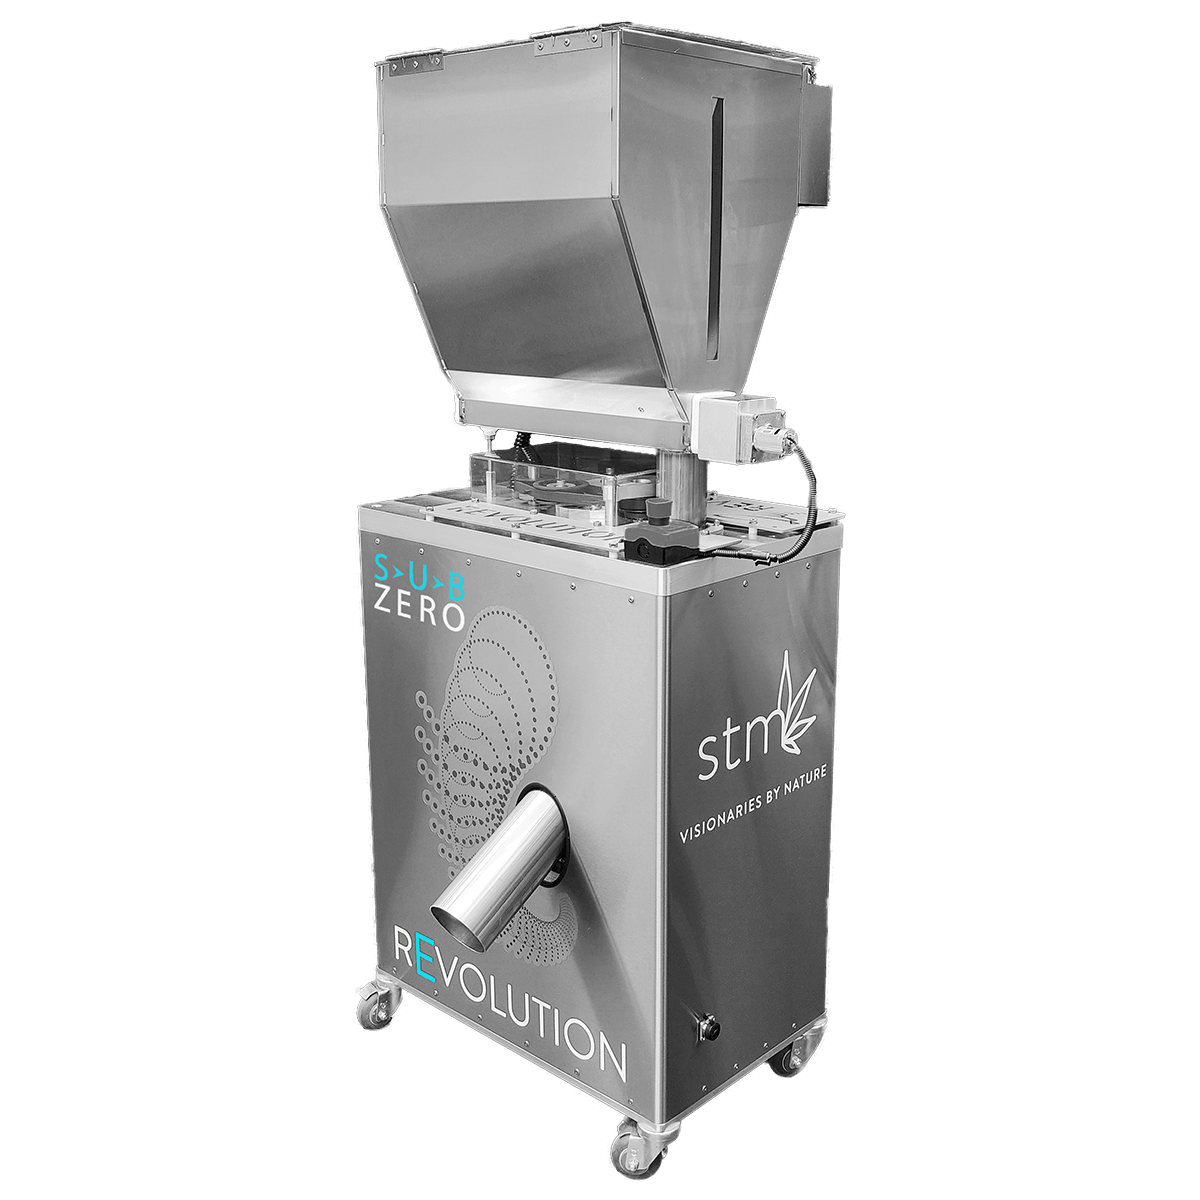 STM Revolution Sub-Zero Commercial Flower Grinder Designed specifically for flower, the grinder delivers a homogenous, consistent grind, optimal for evenly packed pre-rolls and high-yield extraction. Suitable for dry/cured or cryogenically frozen flower, the reimagined Sub-Zero prevents subsequent degradation of volatile terpenes, trichomes, and cannabinoid profiles by grinding in a low temperature-controlled environment.Features 15-30 LBS Per Hour of Dry Flower Interchangeable Fine & Coarse Particle Screens for Extraction & Pre-Rolls Sub-Zero Freezer and Refrigerator Safe Helps Maintain Organic Compounds for Peak Potency, Flavor, and Aroma Self-Regulating, Closed-Loop System to Prevent Clogs Aids in Increasing Uniformity for Higher Efficiency & Yield in Extraction Excellent for Live Resin, Solventless, Pre-Rolls, and Other Post-Harvesting Processes Built-In Pre-Heating Technology & Temperature-Control Auto-Blade Oscillation Creating Scissor-Like Cuts Auger Timing & Blade Speed Control 7%-10% Optimal Moisture Content Consistent and Repeatable Results Made in the U.S. OSHA Compliant INCLUDES [Base Package]: (1) STM Revolution Sub-Zero Grinder w/ Dual-Blade System (1) Fine Particle Screen (1) Coarse Particle Screen (1) Pair of Cut-Proof Safety Gloves (1) 12-Month Parts & Labor Warranty RENOWNED TRAINING & SUPPORT Dedicated STM Client Services Team Exclusive Client Portal with Library of Training Videos and Information IMPORTANT INFORMATION – PLEASE READ: Inquire within for lead time. This is a special order unit and typically maintains an 8-week shipping time from the payment date. Shipping cost does not cover any customs-related charges for international orders. Machine requires 220 V power and 18 load amps (L6-30 25 Amp Plug). Please be advised this machine is meant for material 10% or lower in moisture content to maximize efficacy. Pre-preparation of the material is still necessary to remove sticks and large stems. Biomass is not recommended as this machine is spec